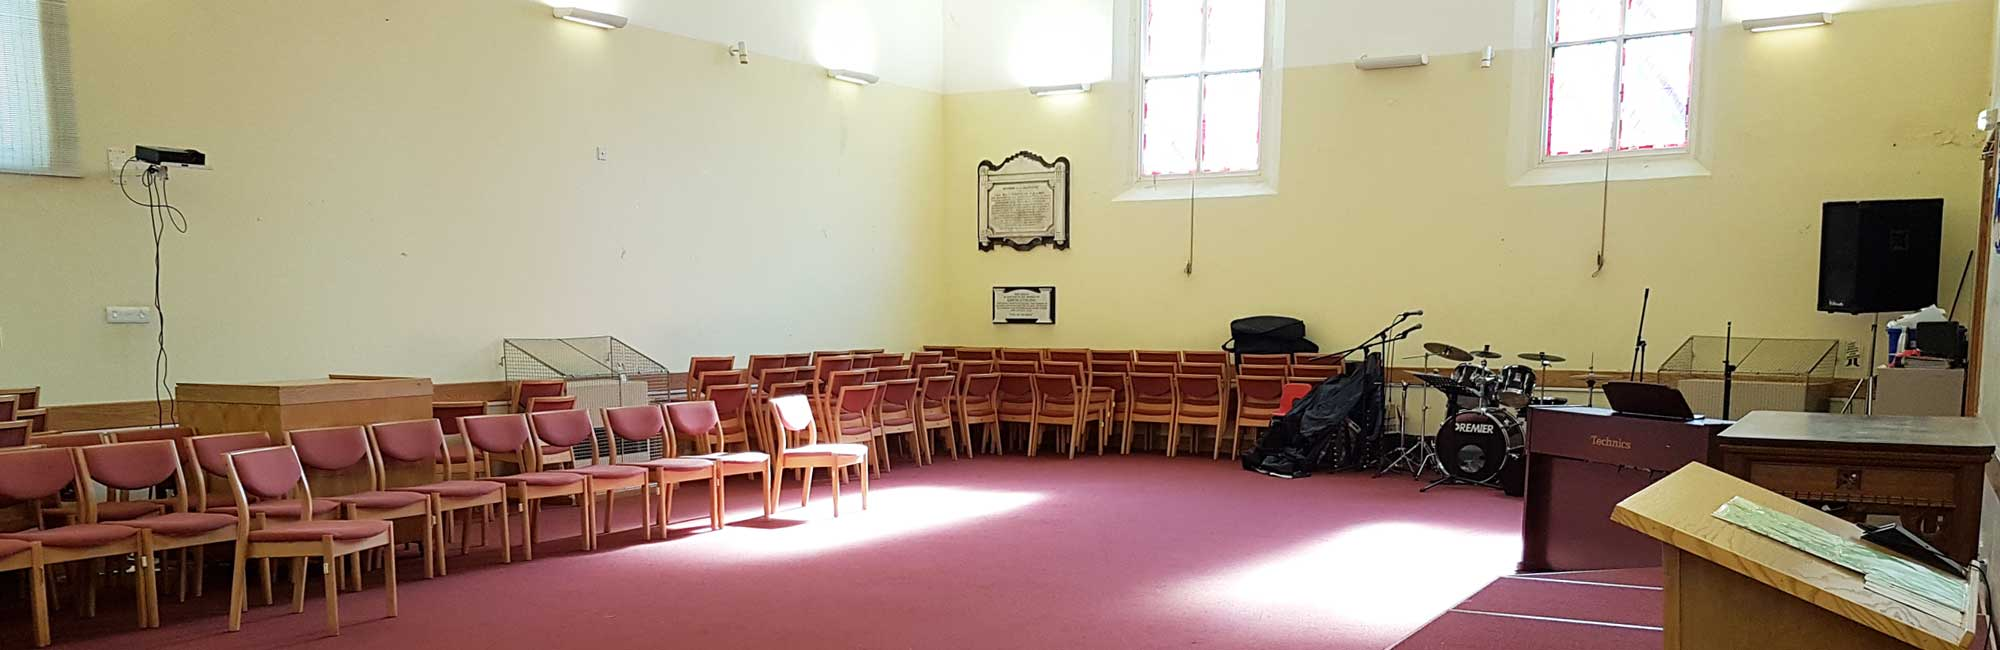 Image of the chapel at St Peter's Baptist Church